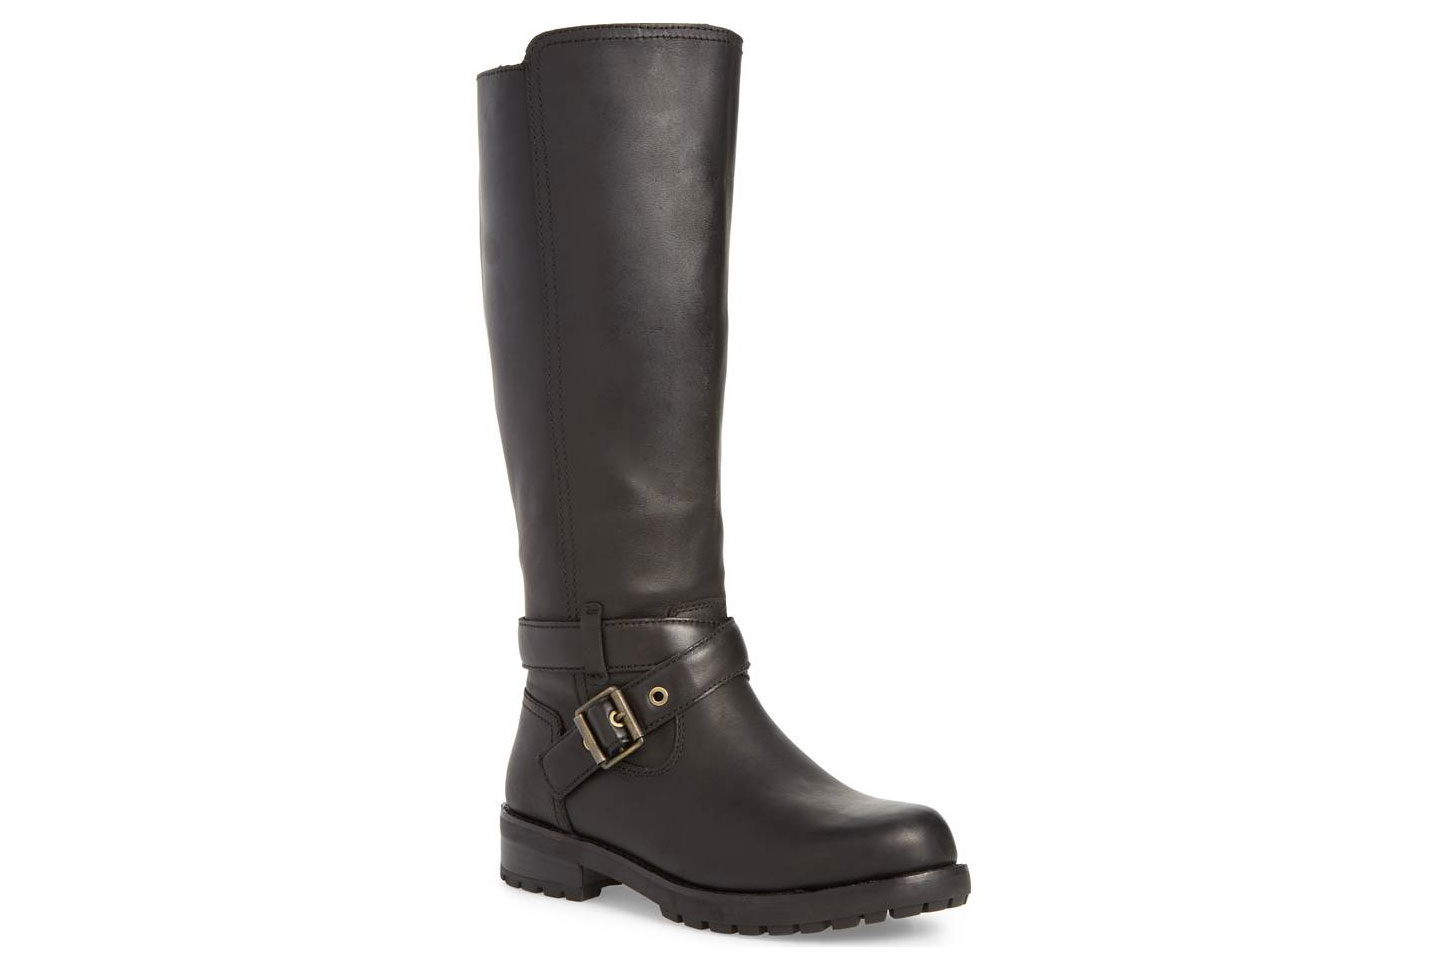 Ugg Harington Riding Boot